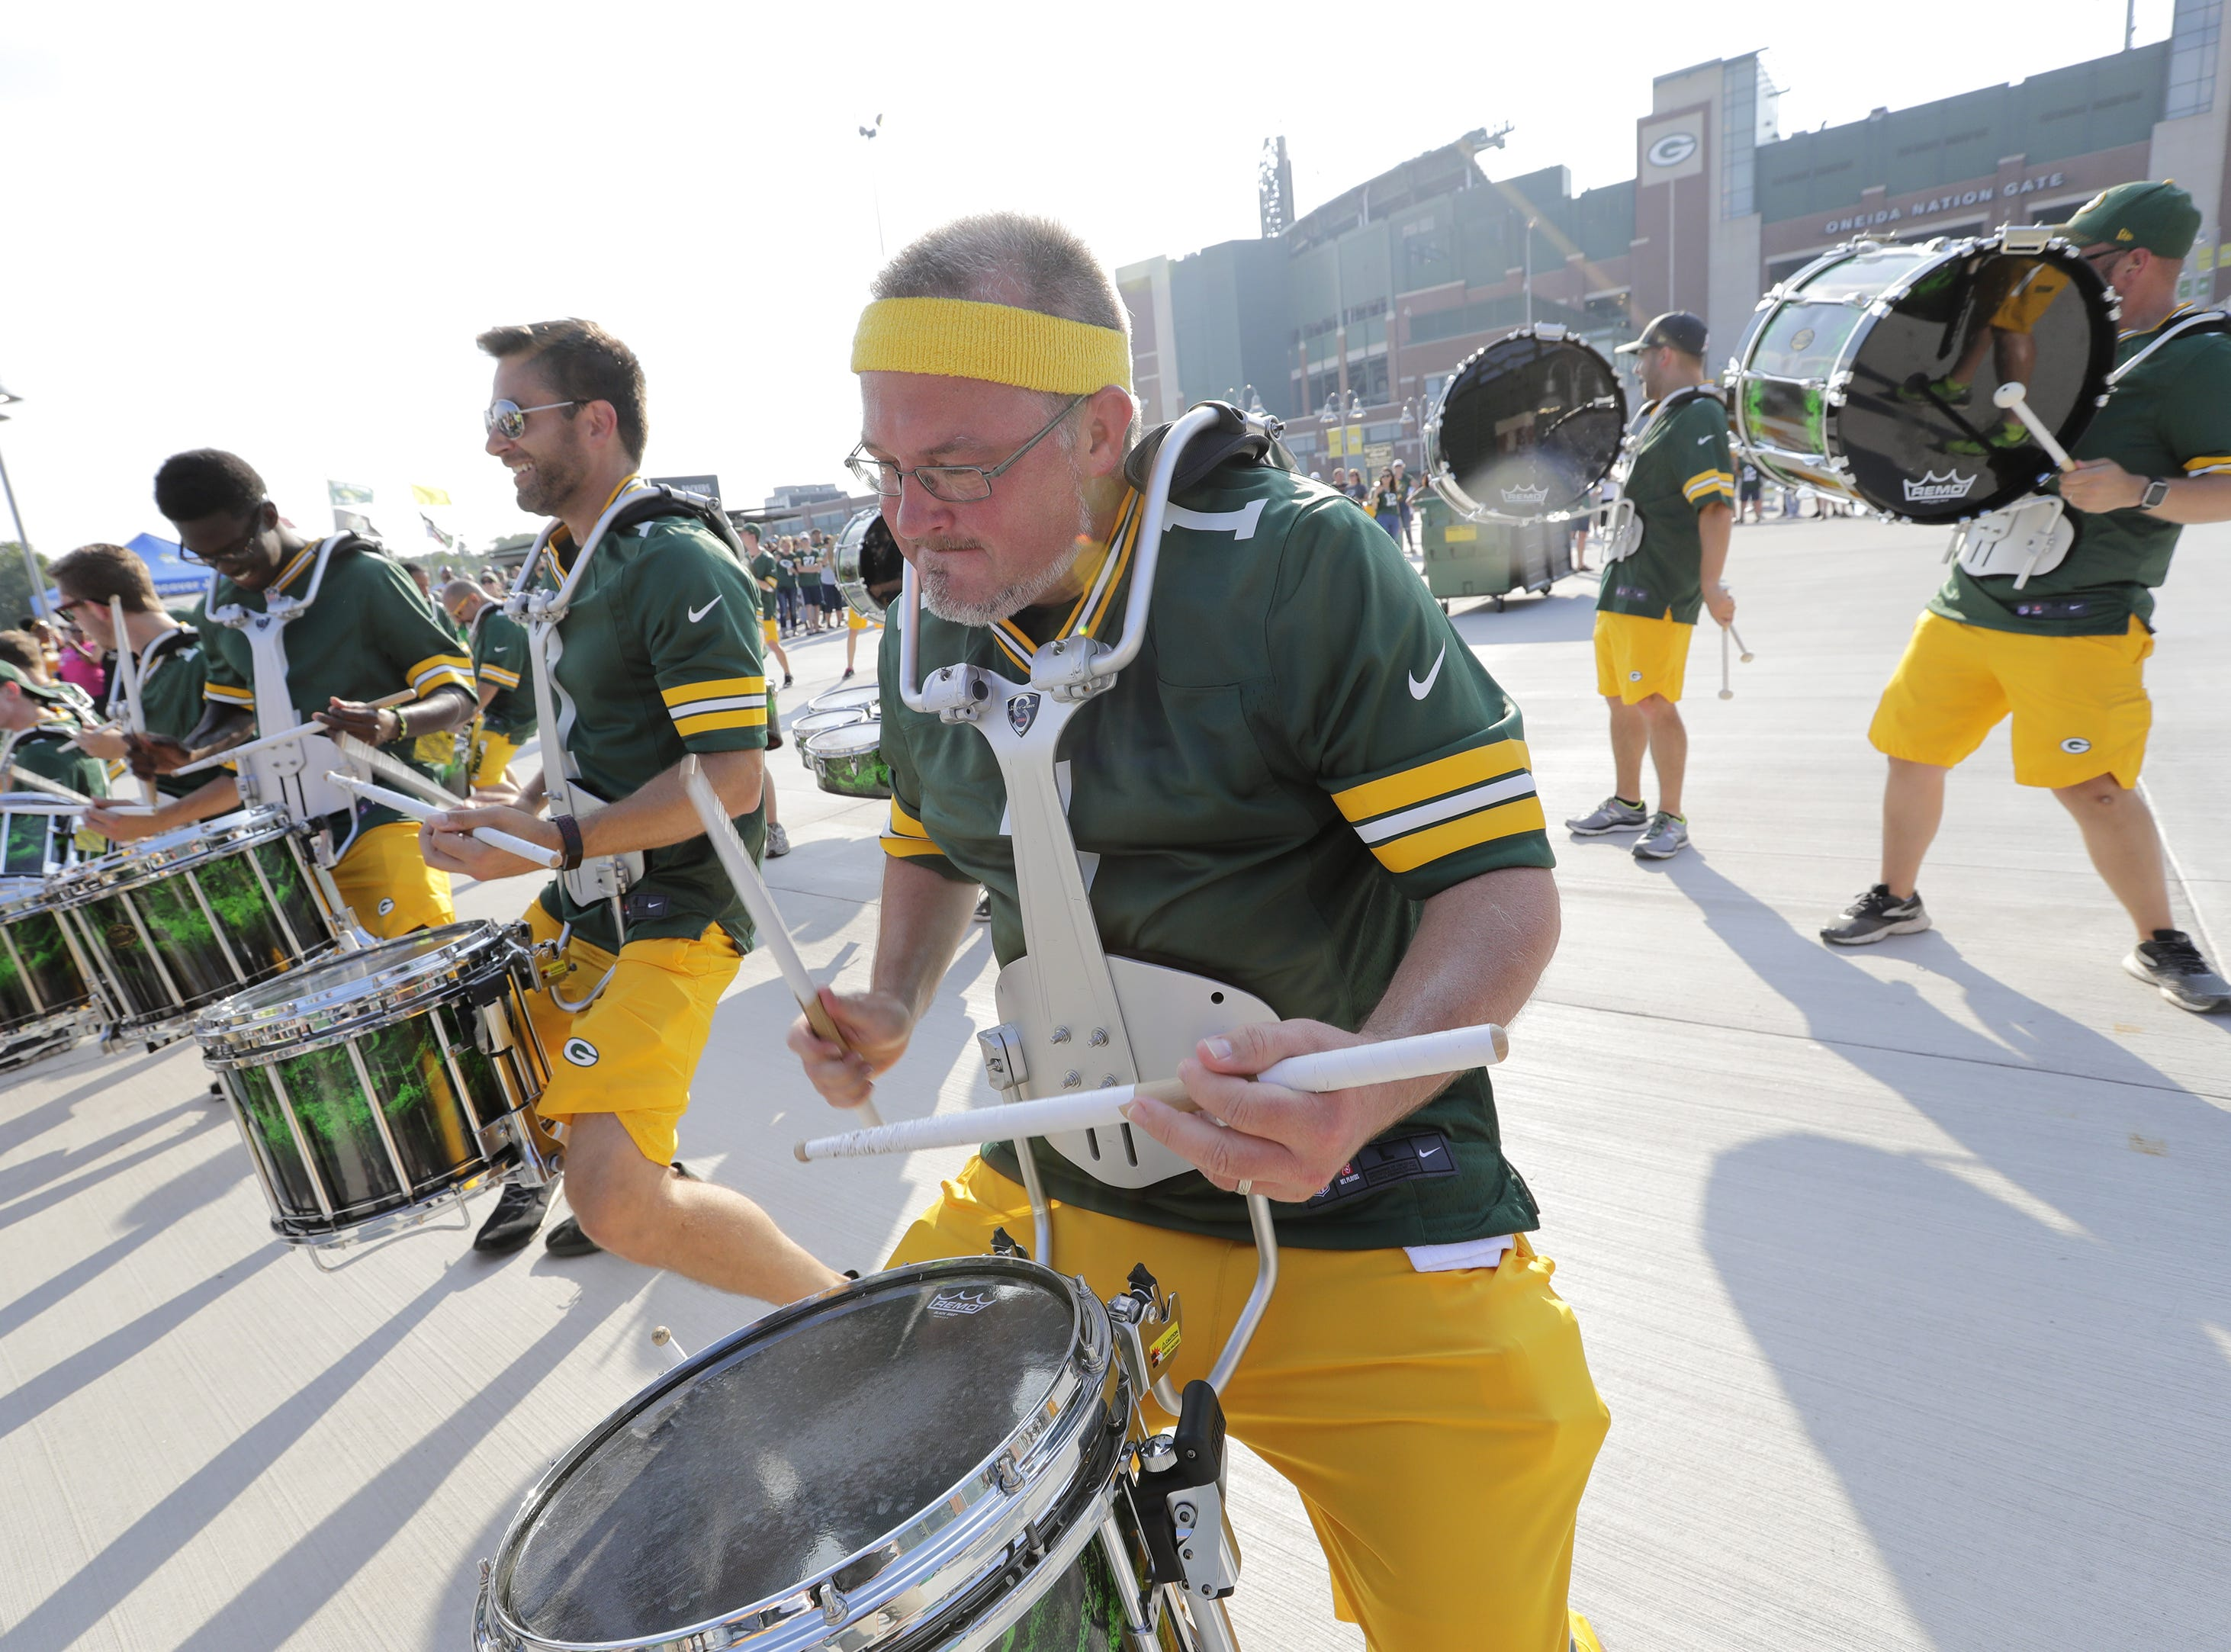 Members of the Tundra Line entertain fans before the Green Bay Packers take on the Tennessee Titans Thursday, August 9, 2018, at Lambeau Field in Green Bay, Wis.